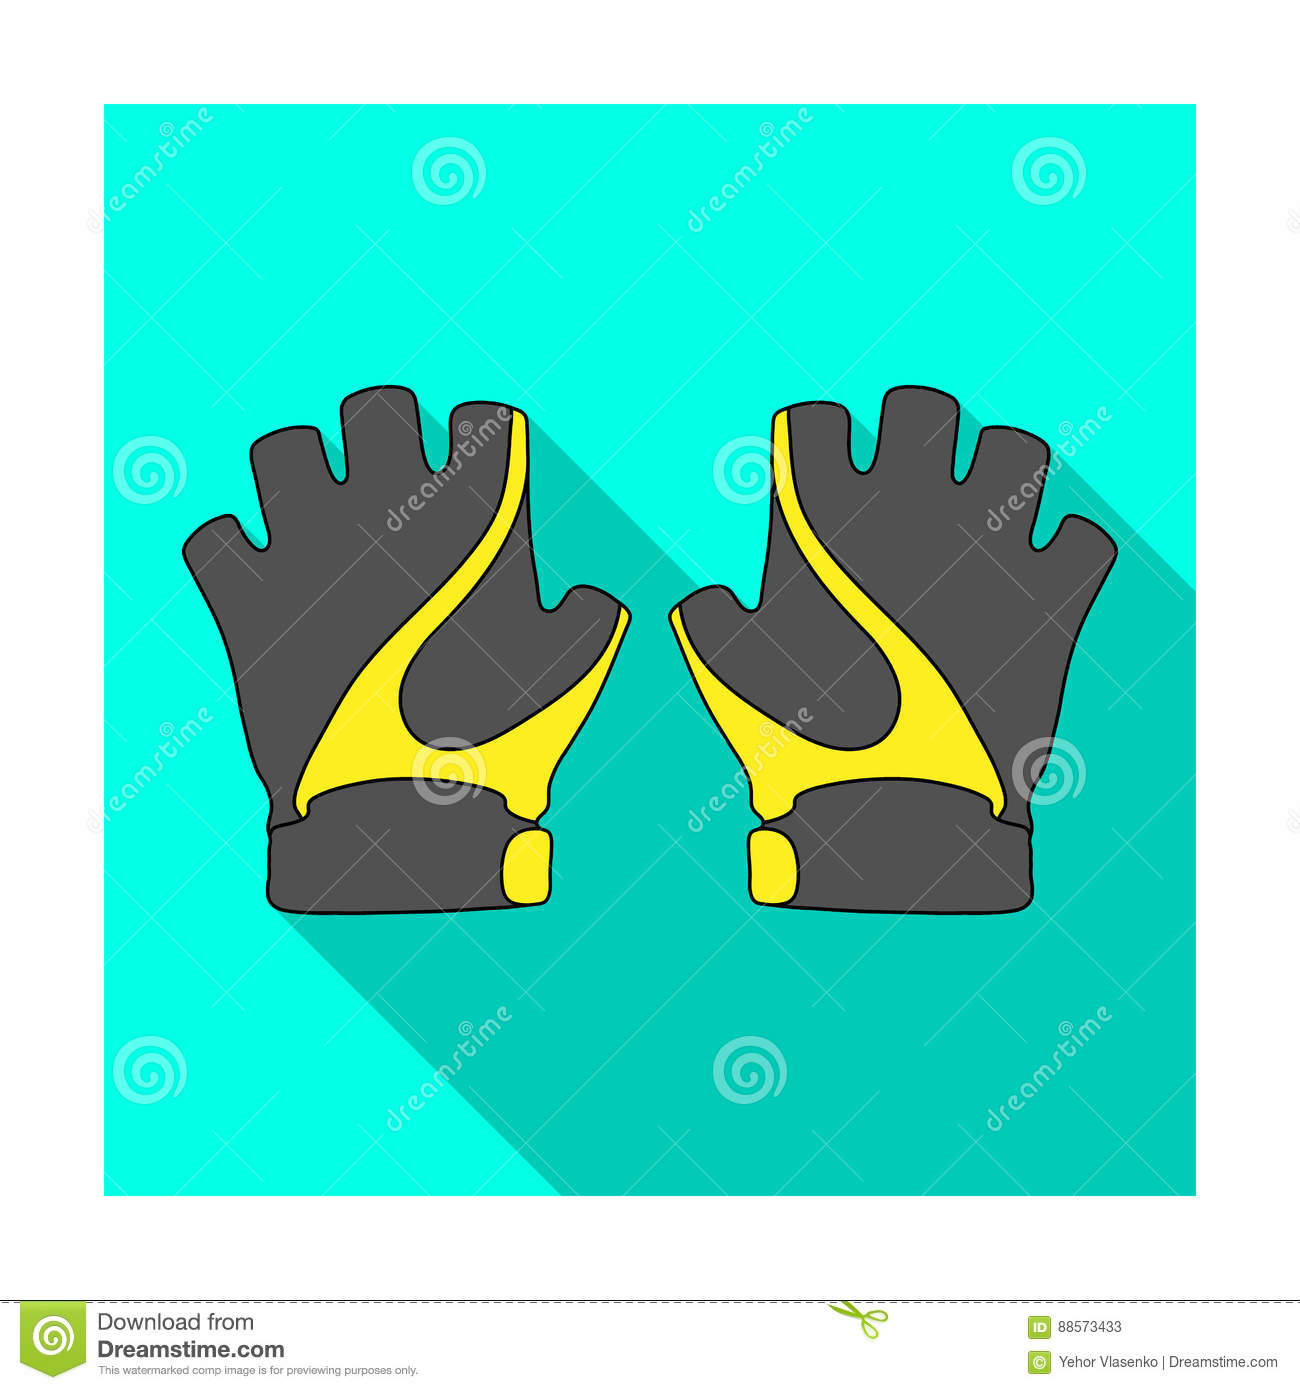 Bike Hand Gloves For Cyclists Protective Equipment For Athletes